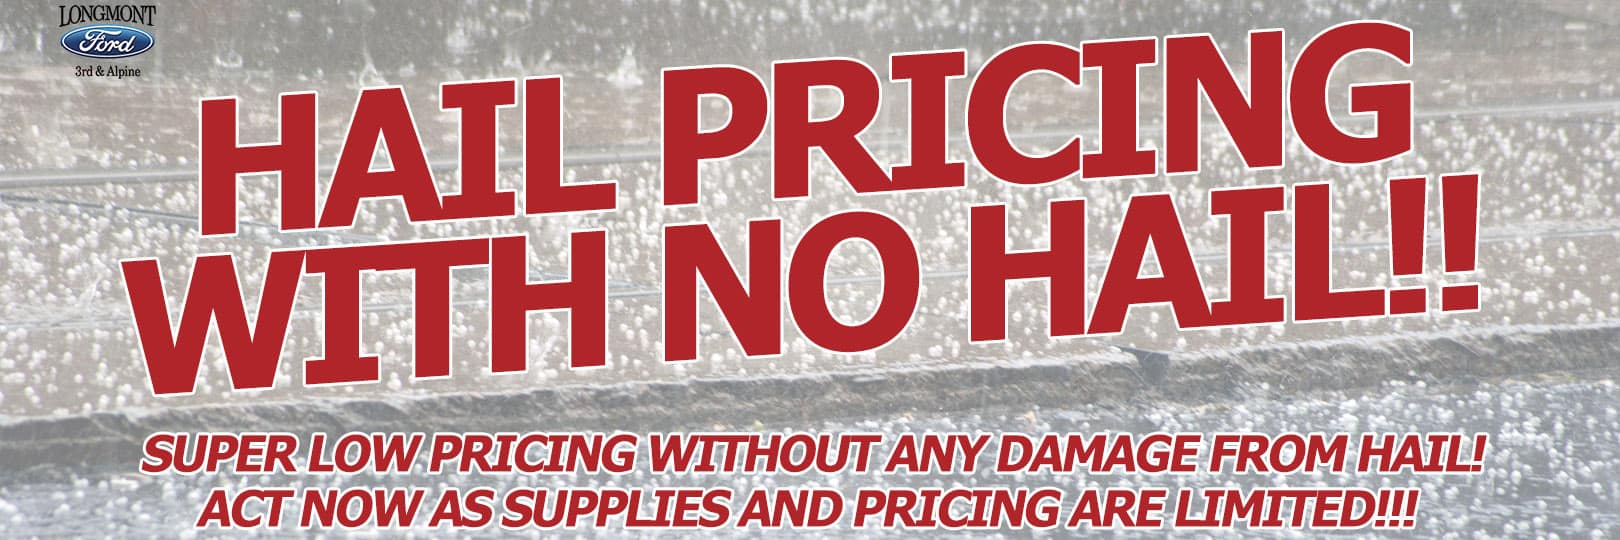 Hail Sale Prices without the Hail at Longmont Ford